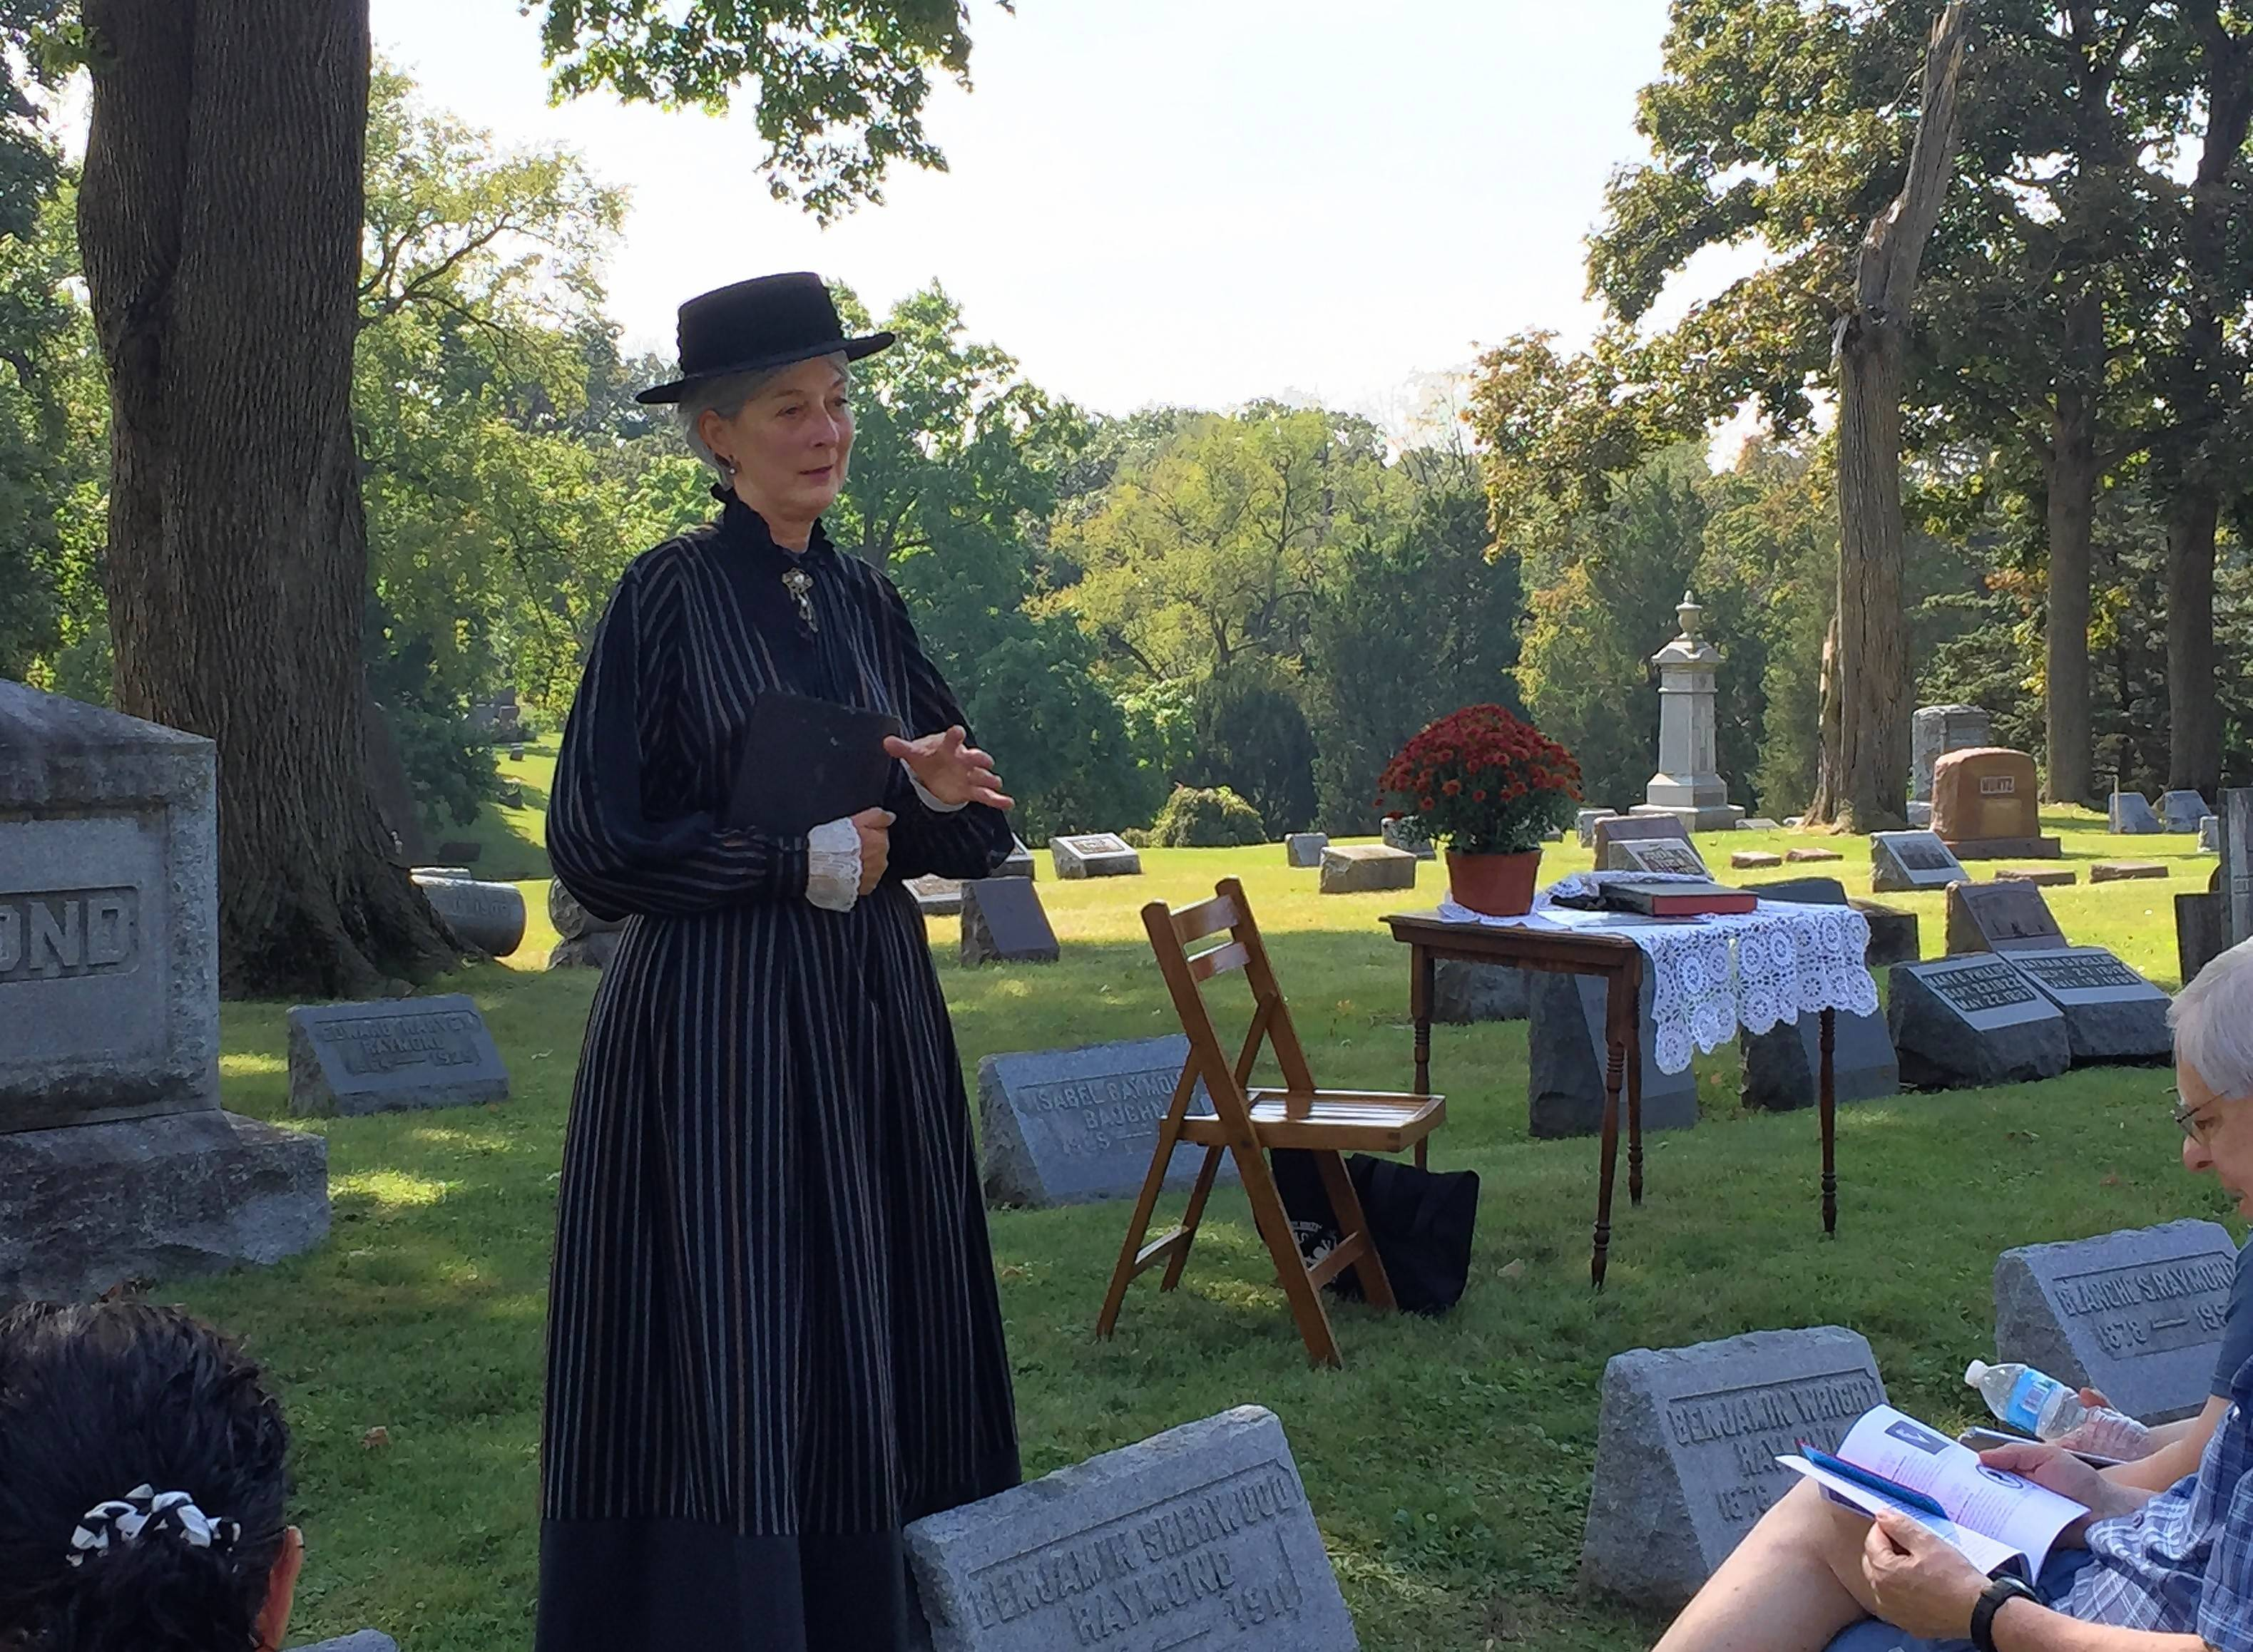 Elgin resident Linda Rock portrays Emily Lord, an abolitionist who started a girls' seminary in the 1800s, during the 29th annual Cemetery Walk at Bluff City Cemetery on Sunday.